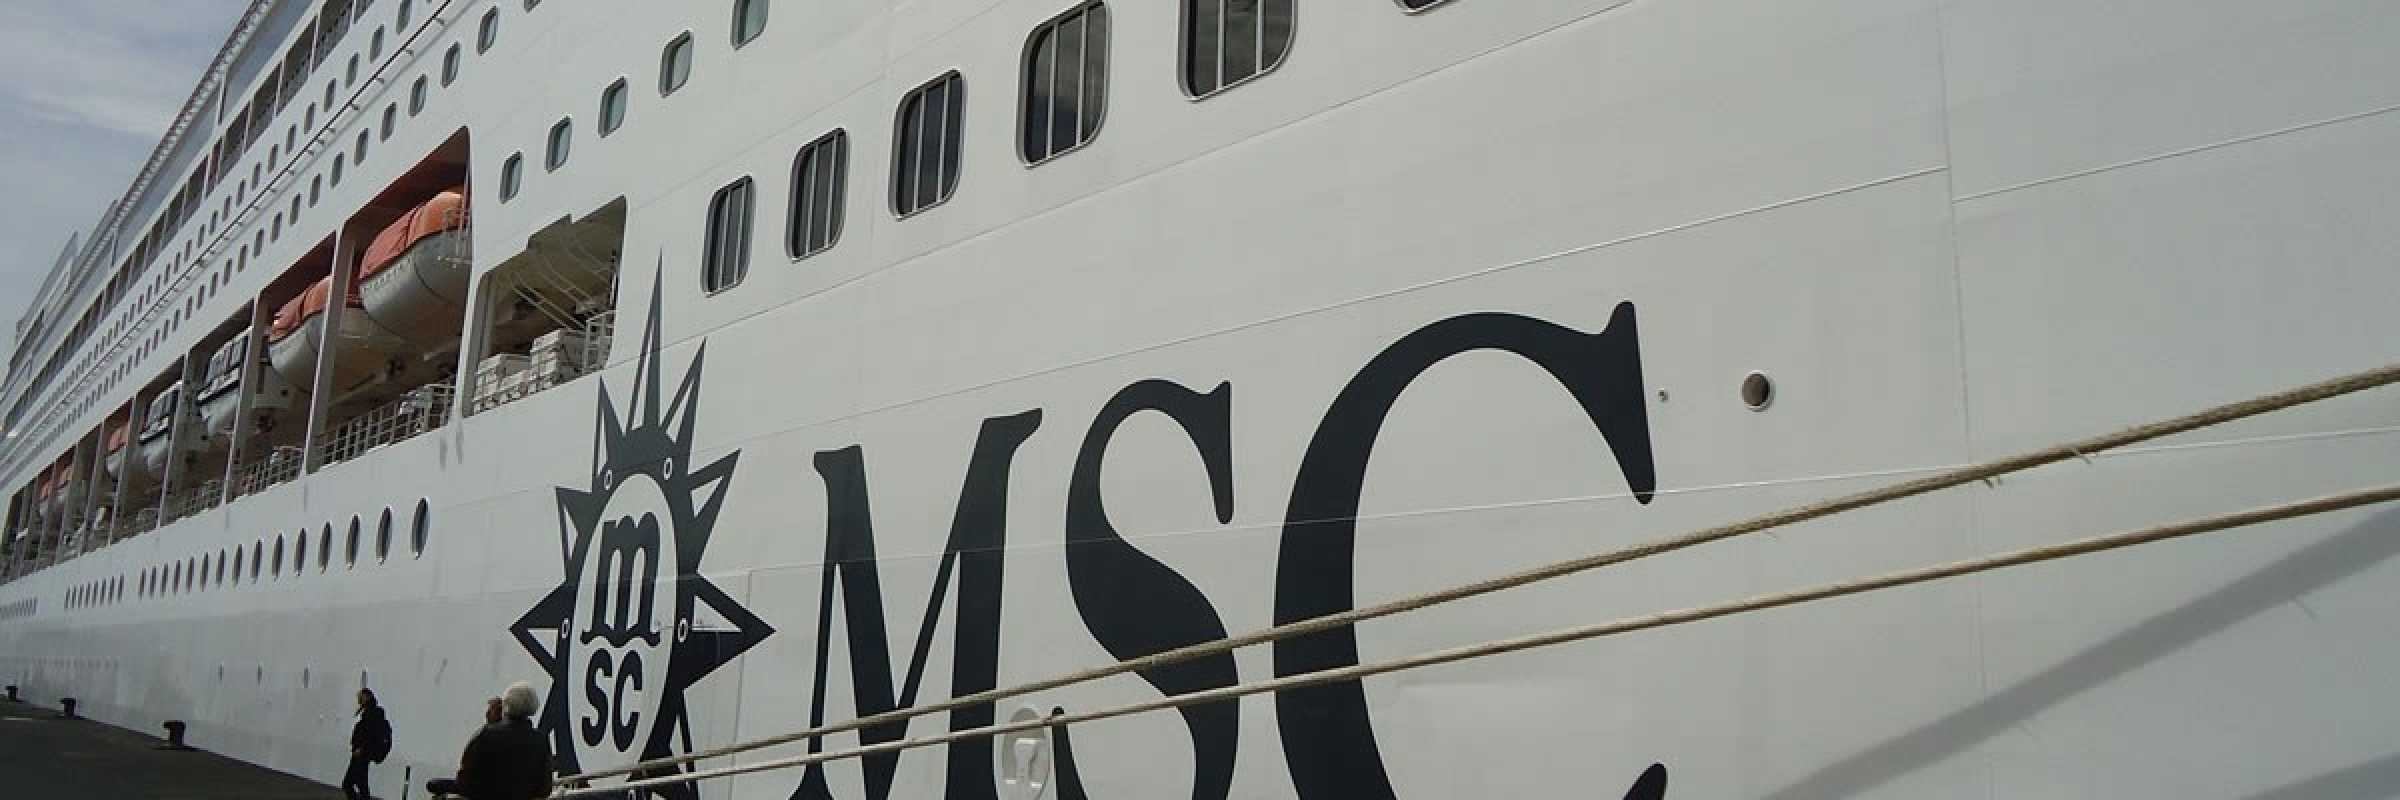 MSC finds funds for fleet-wide scrubber programme